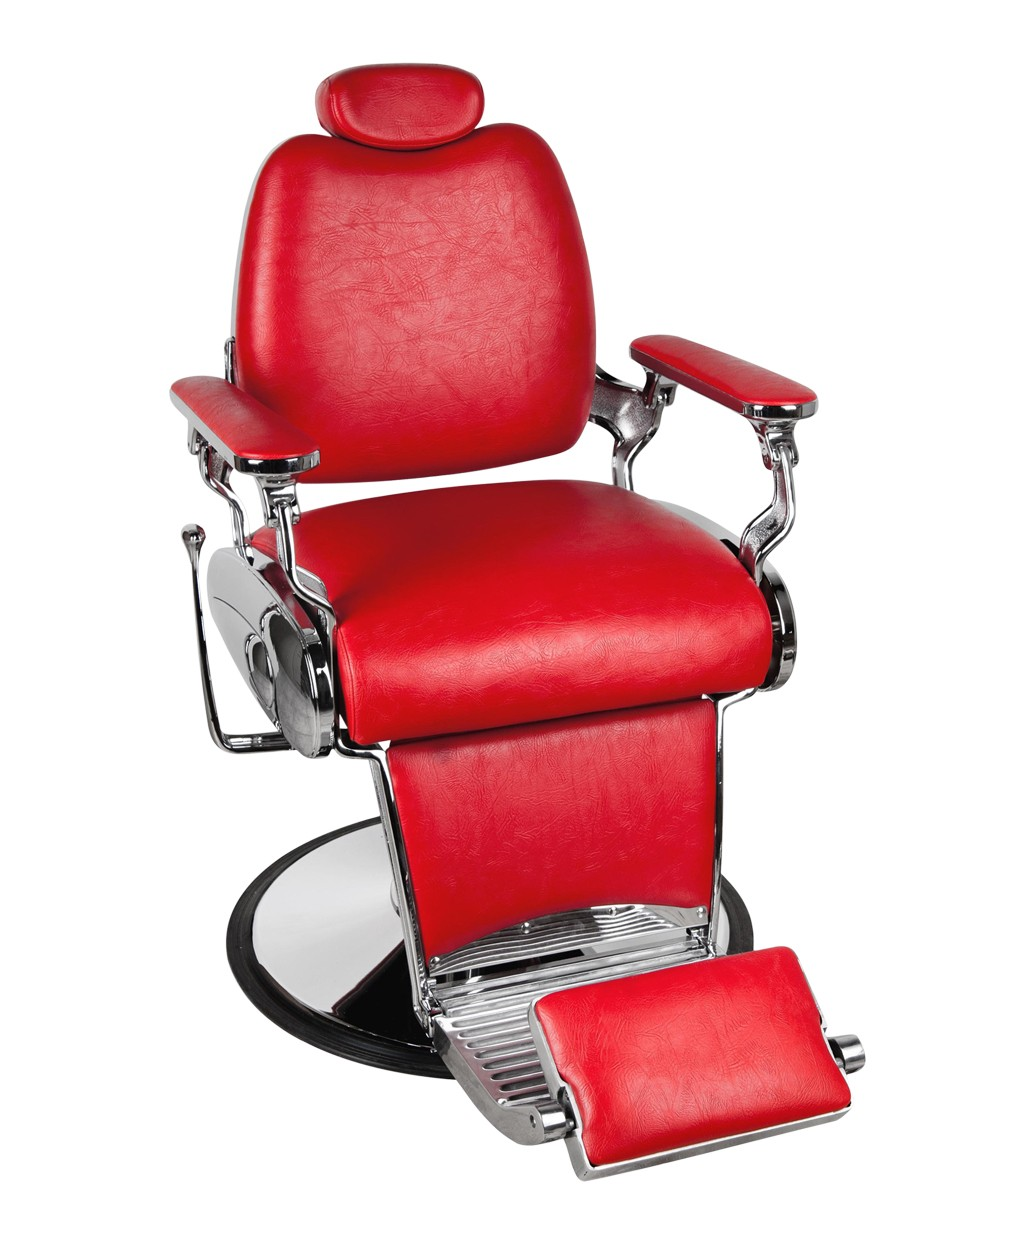 new black barber chair vintage barber chair for barbershop chairs professional barber chair hair salon DS-T252